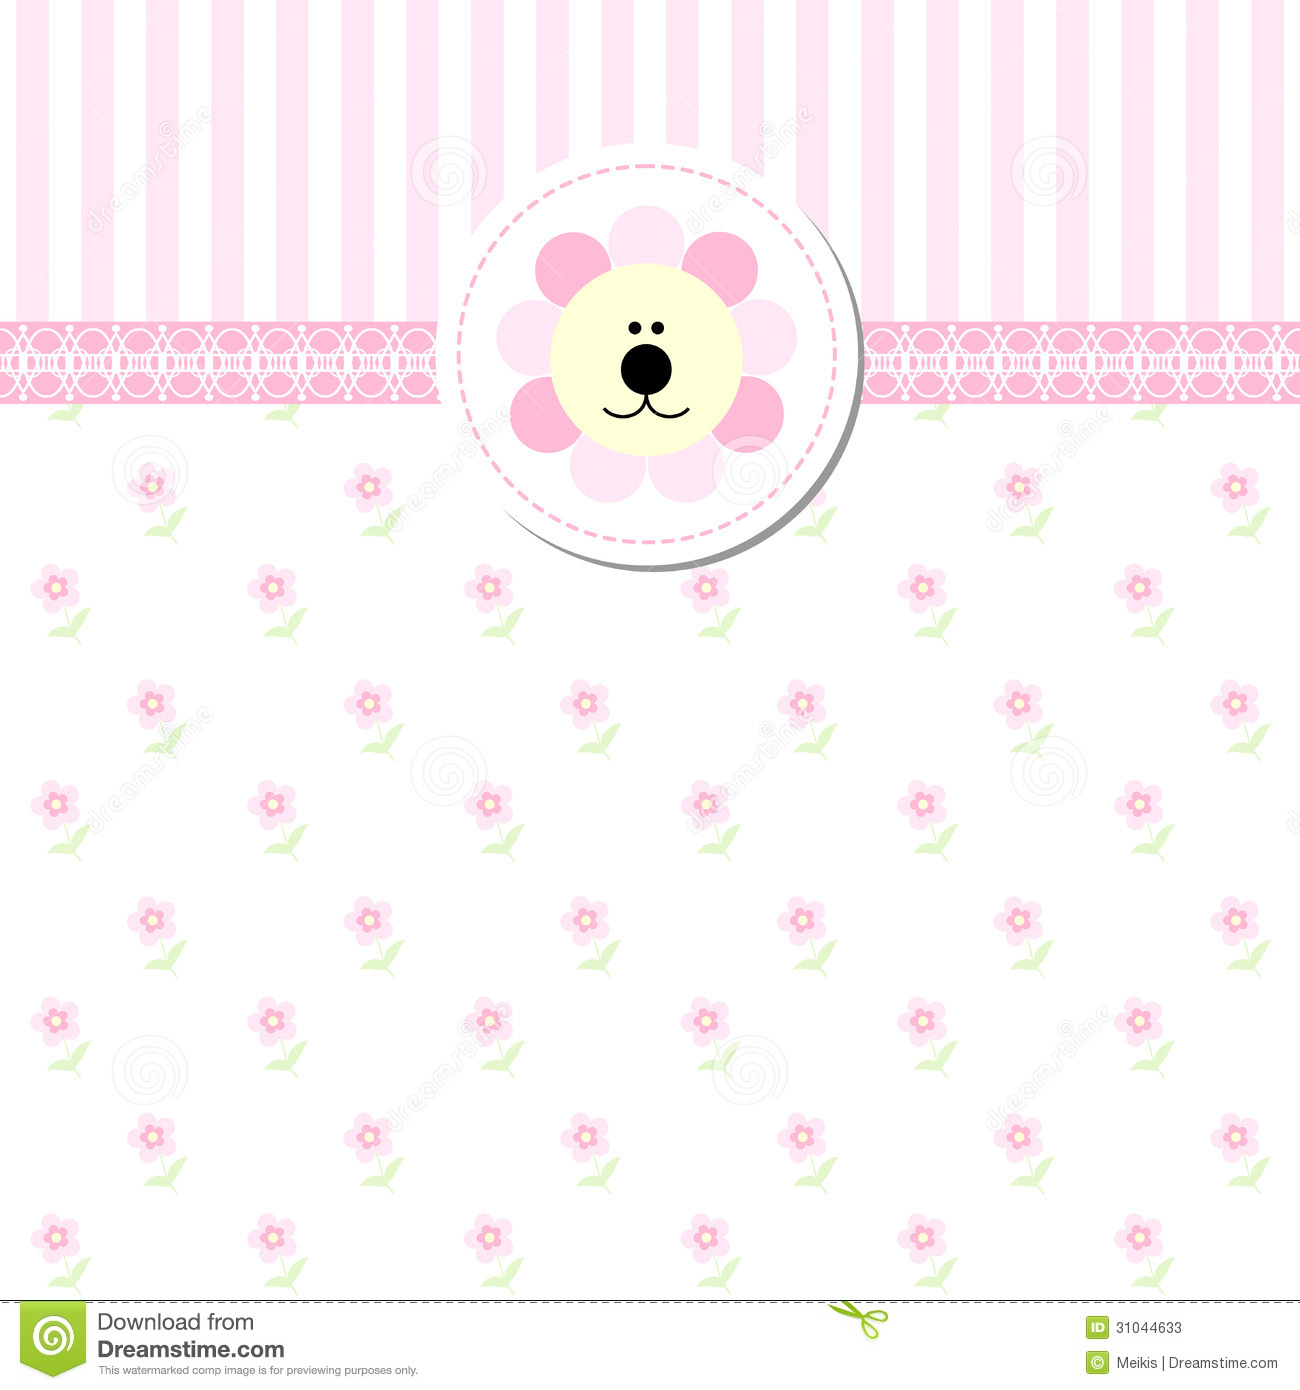 Welcome Wall Sticker New Baby Shower Invitation Card Stock Photos Image 31044633